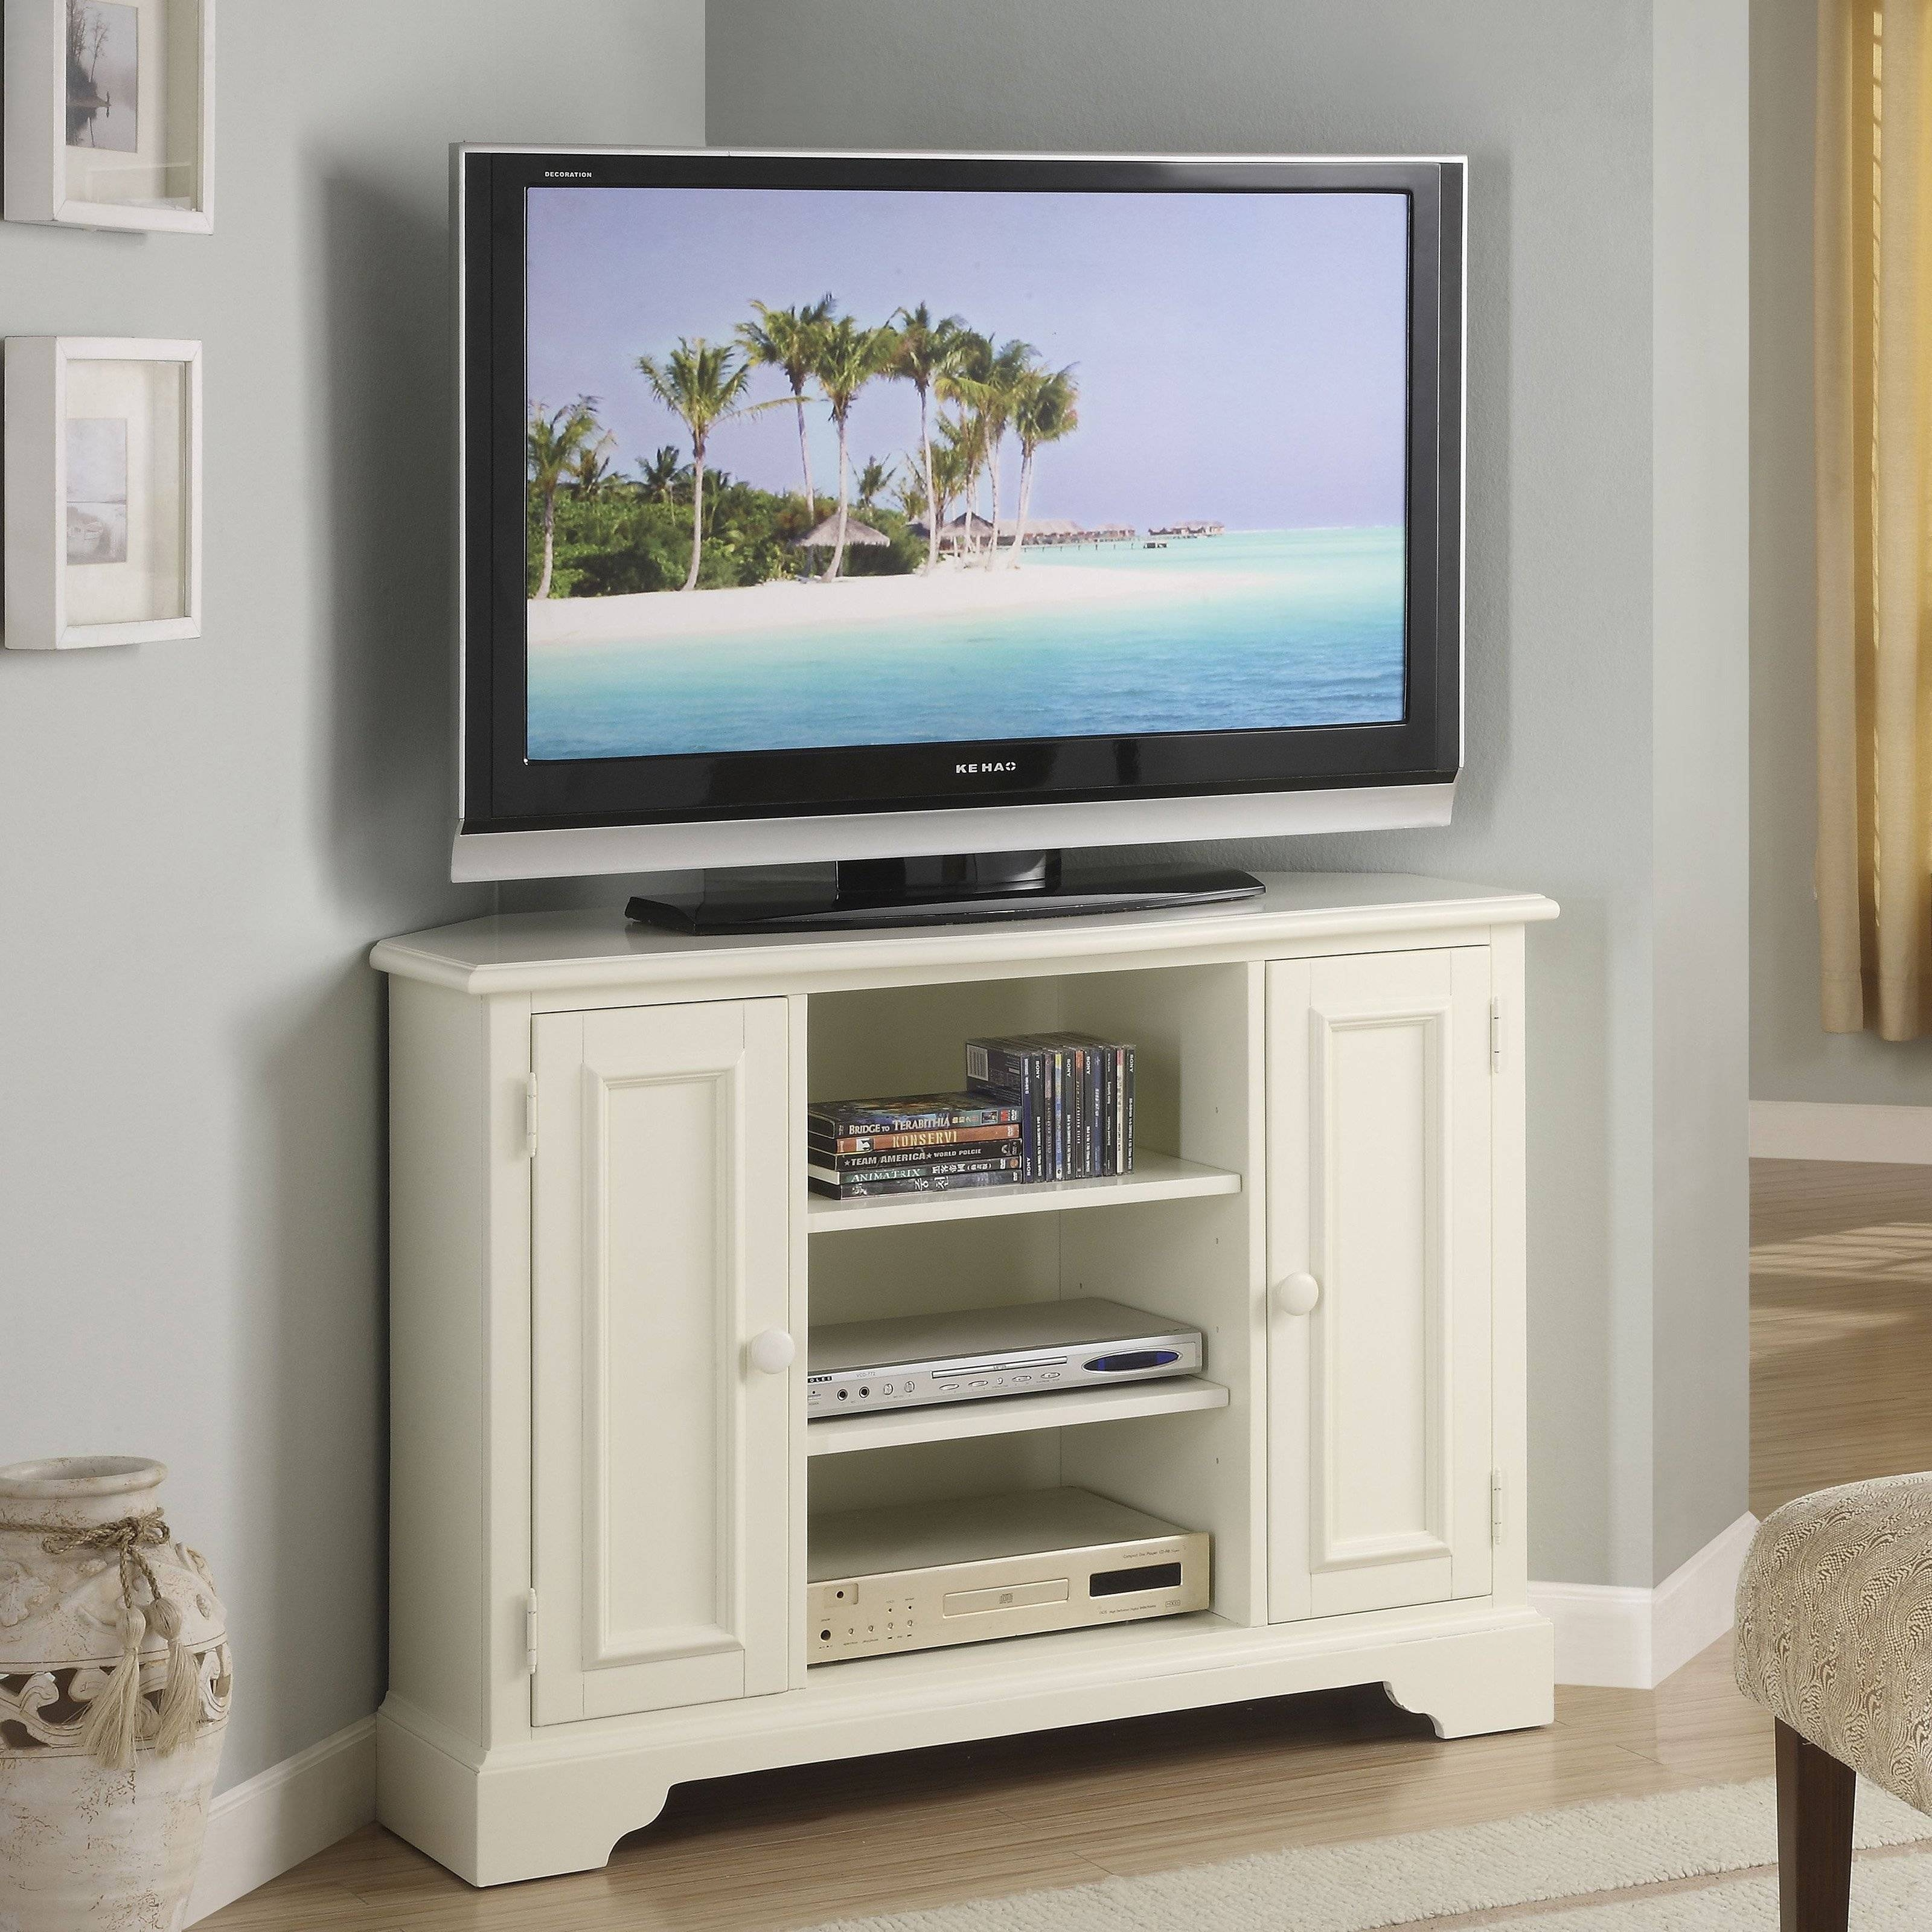 15 Best Ideas Of Corner Tv Cabinets For Flat Screens With Doors